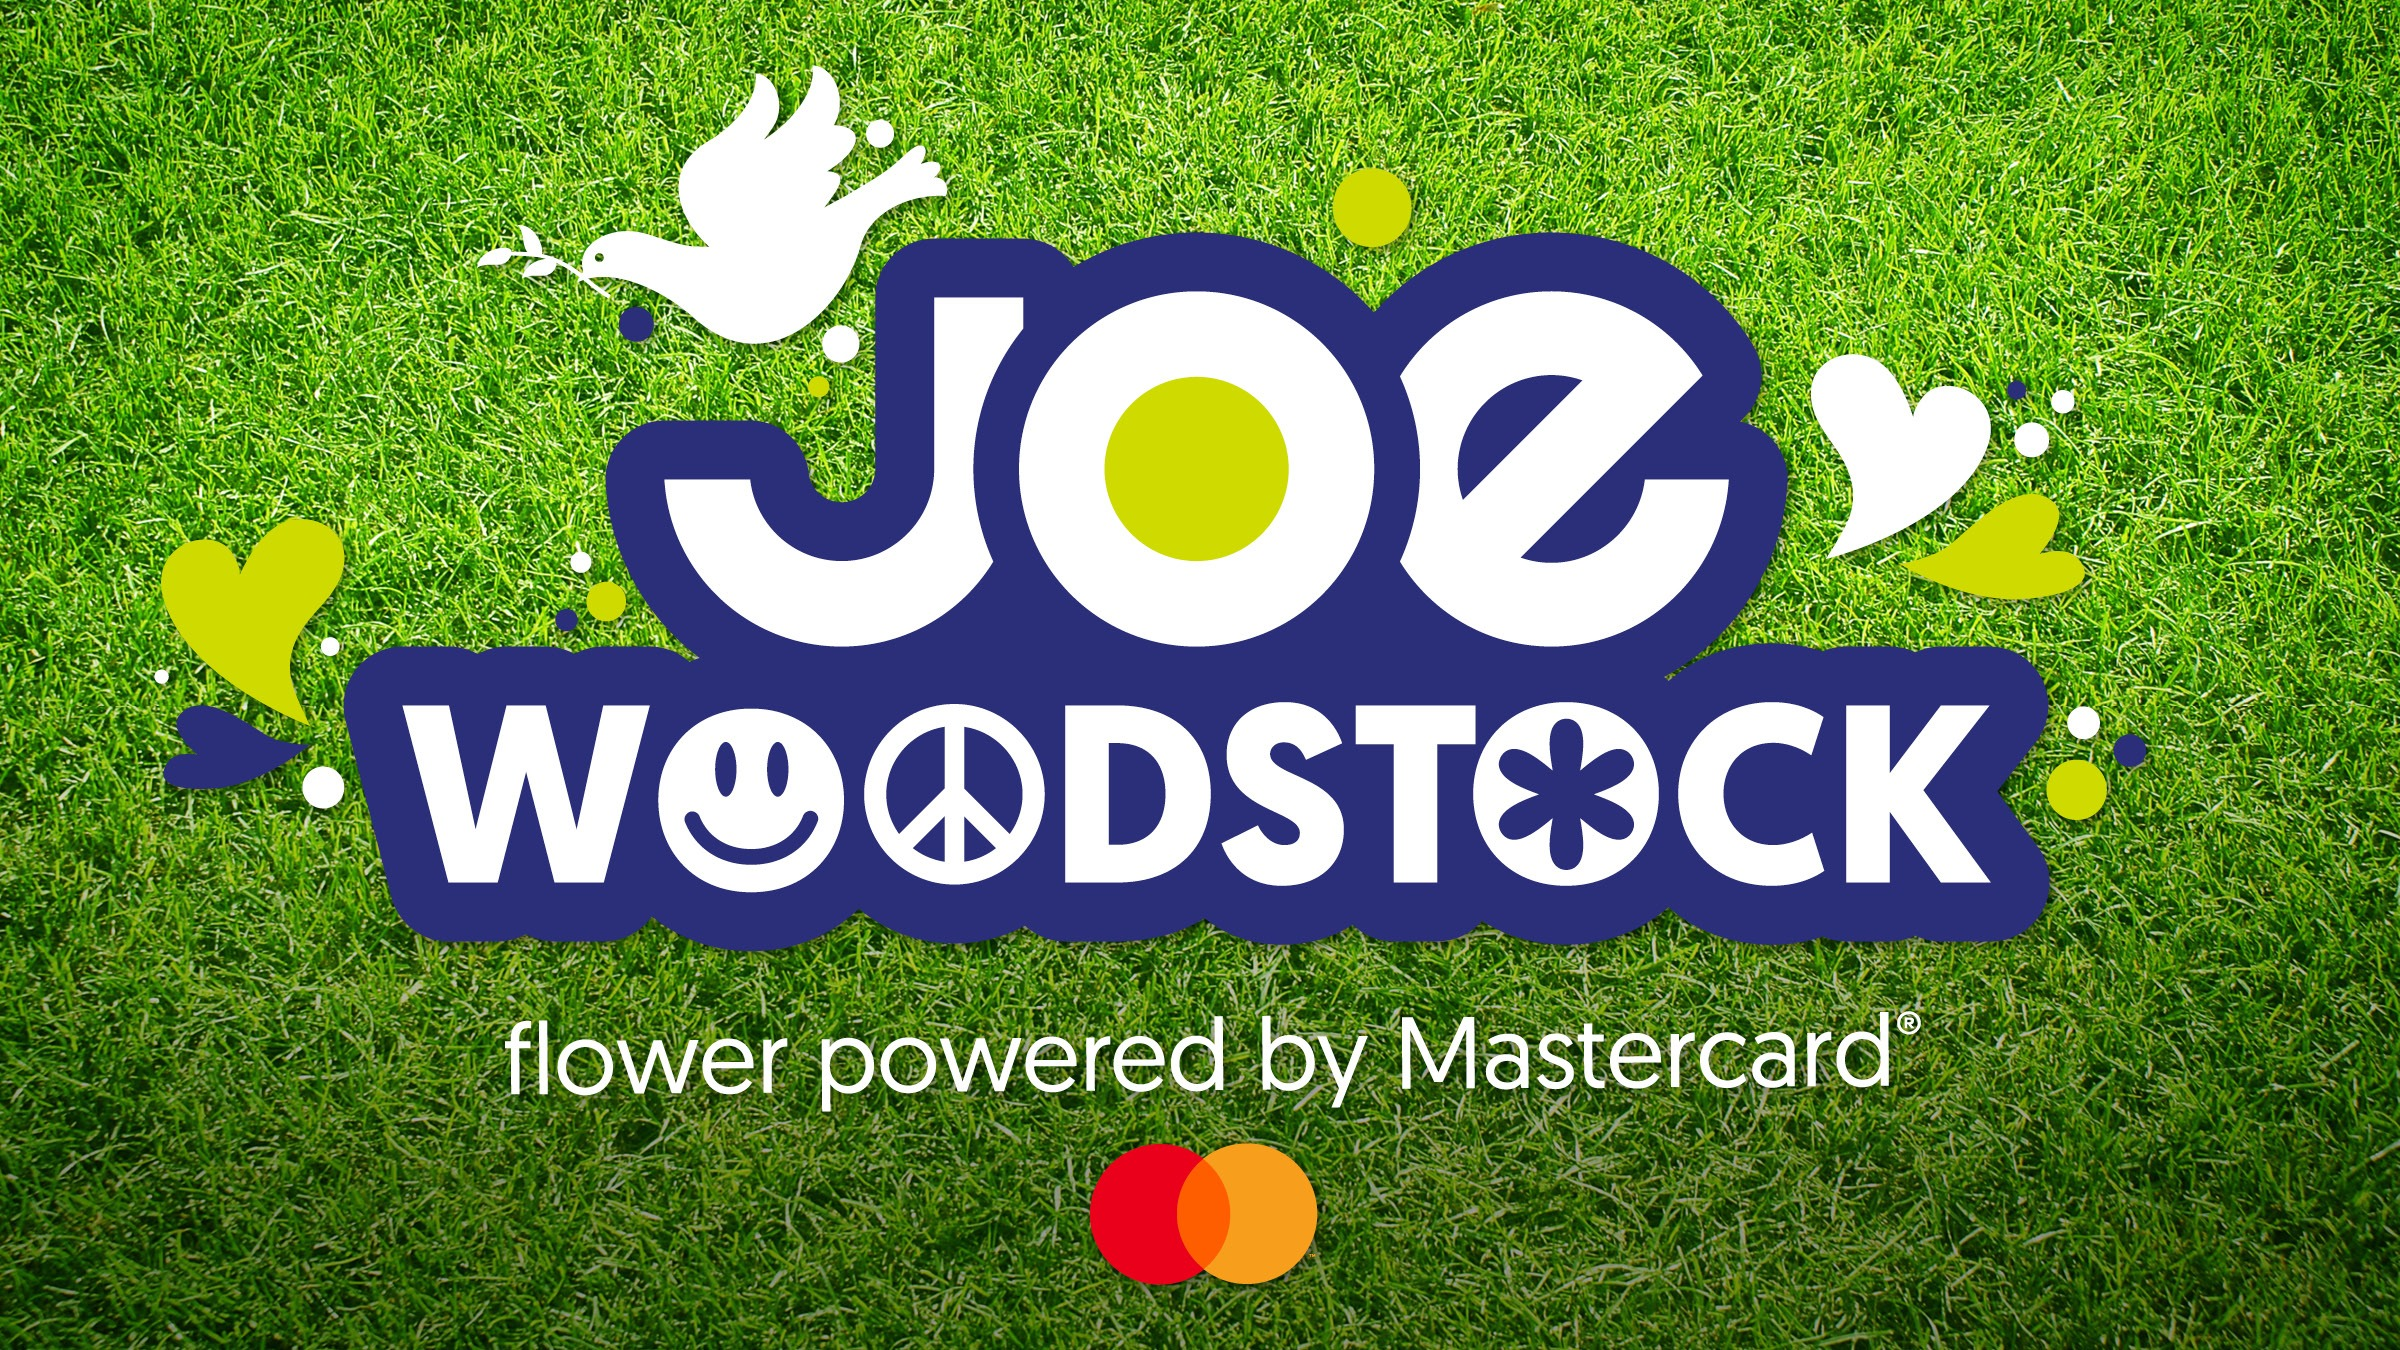 Joe woodstock site